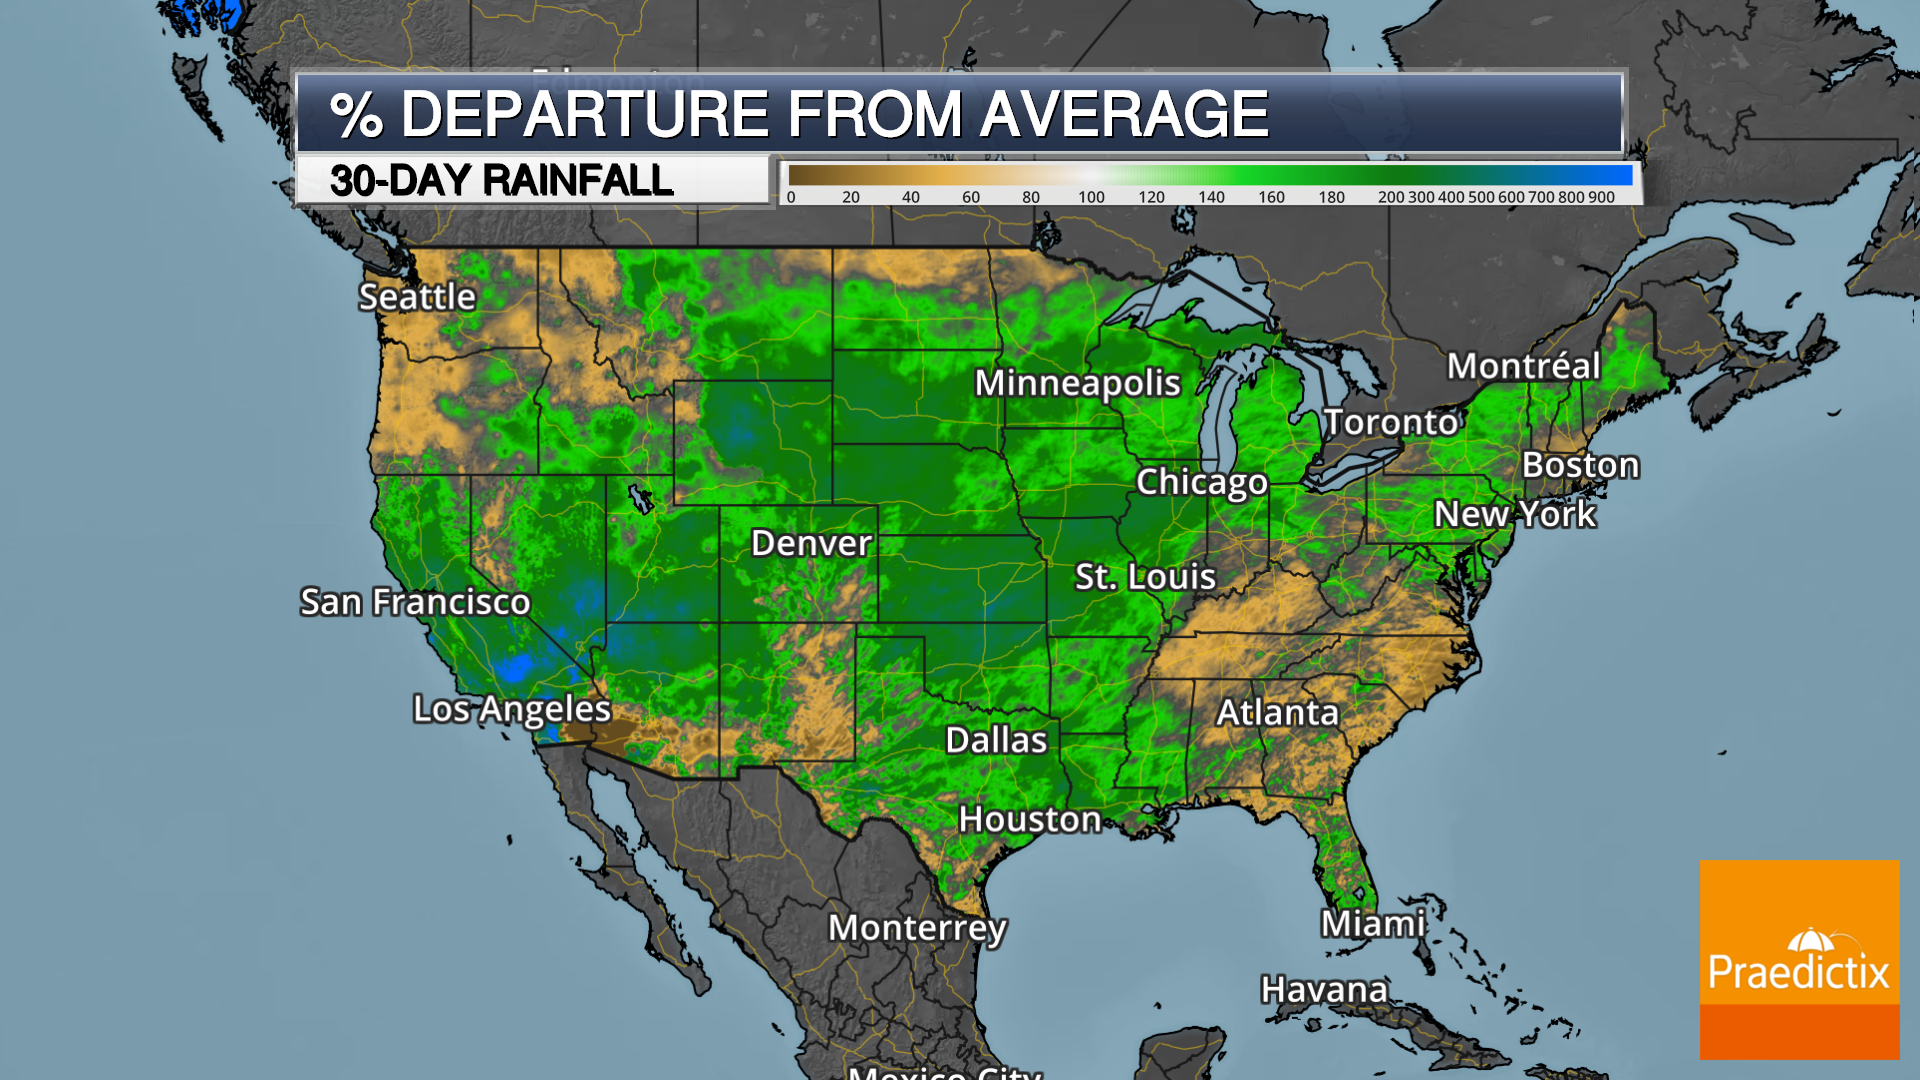 weather graphic showing percentage departure from average of 30 day rain in the United States with legend on dark map.